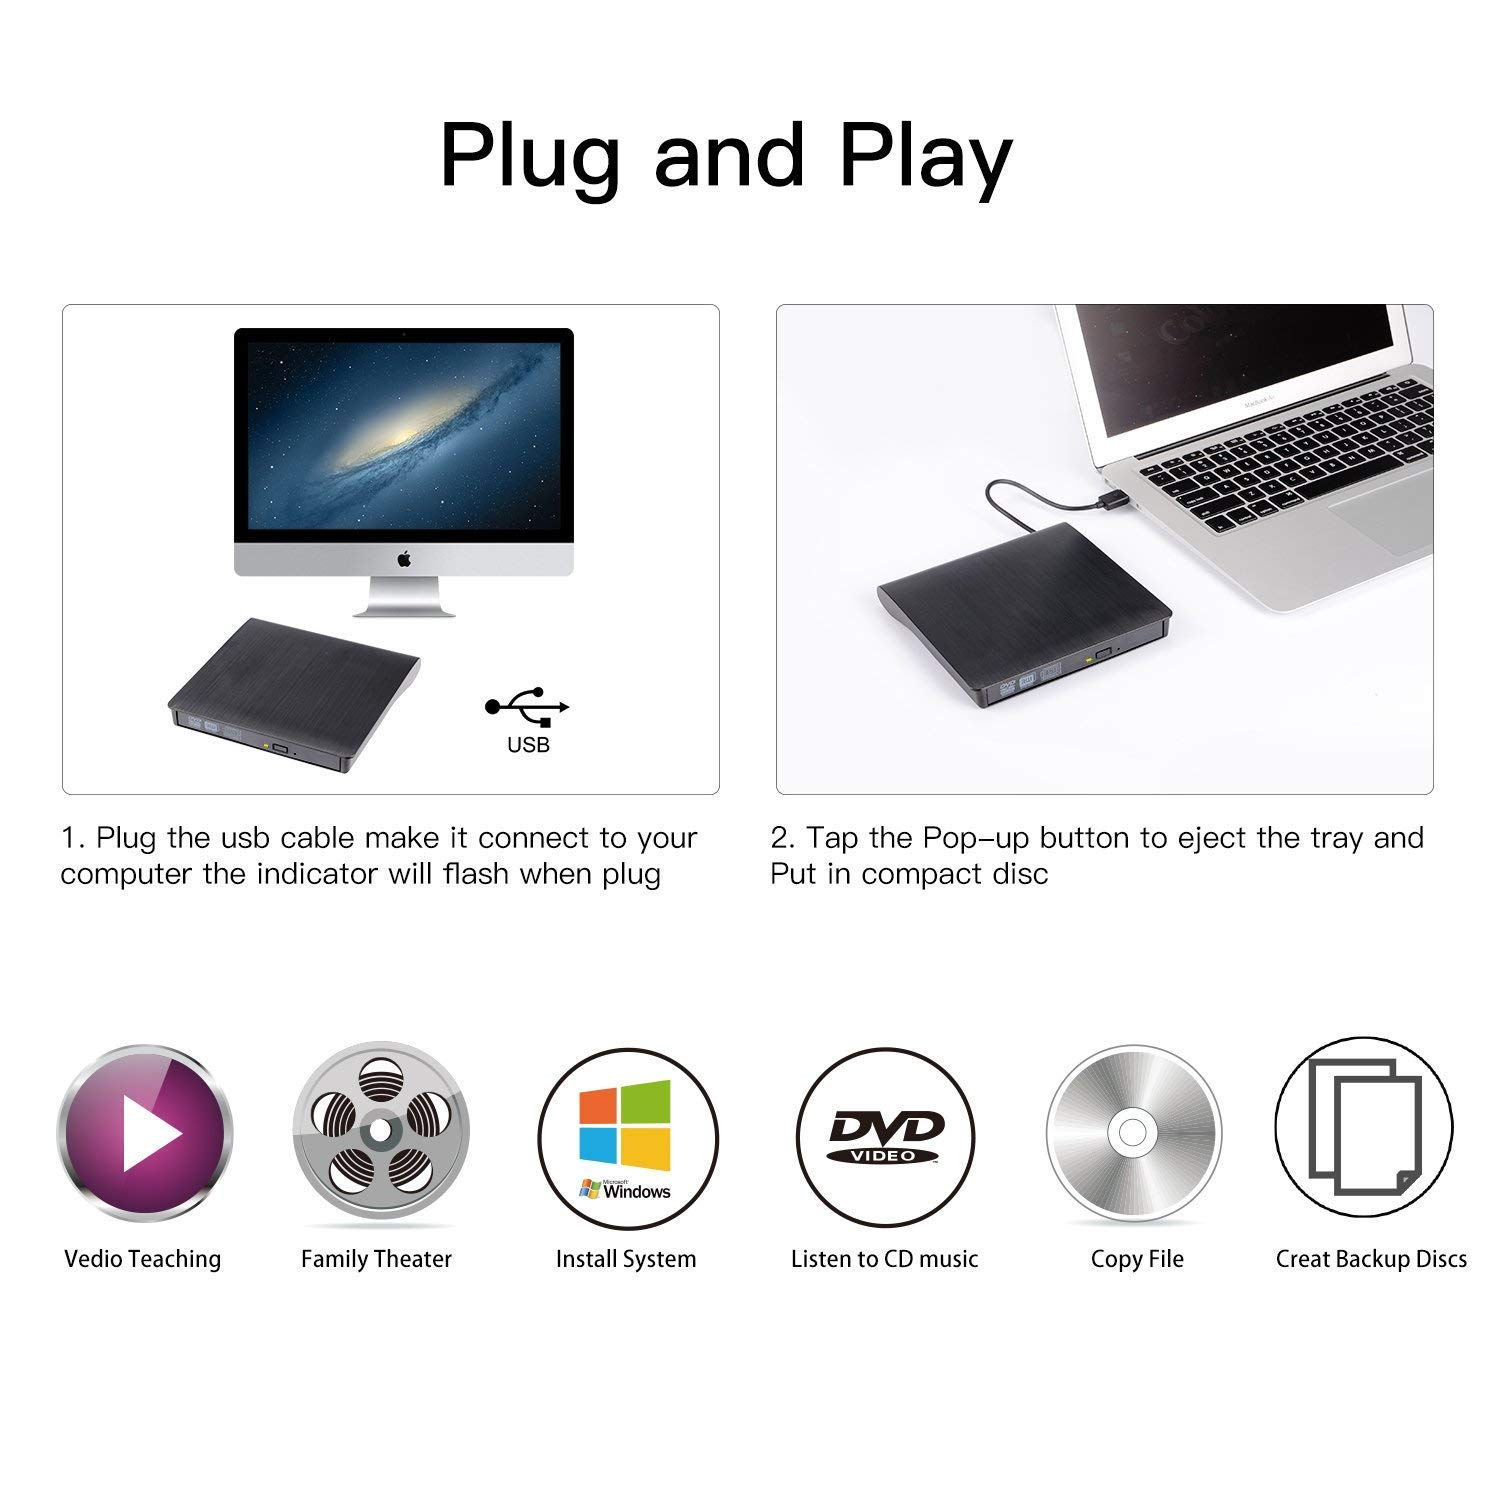 Charlemain Lettore CD Dvd Esterno Masterizzatore USB 3.0+Type C Portatile Lettura/Scrittura CD-R Dvd-RW per PC MacBook PRO/Air Laptops Windows (Nero)